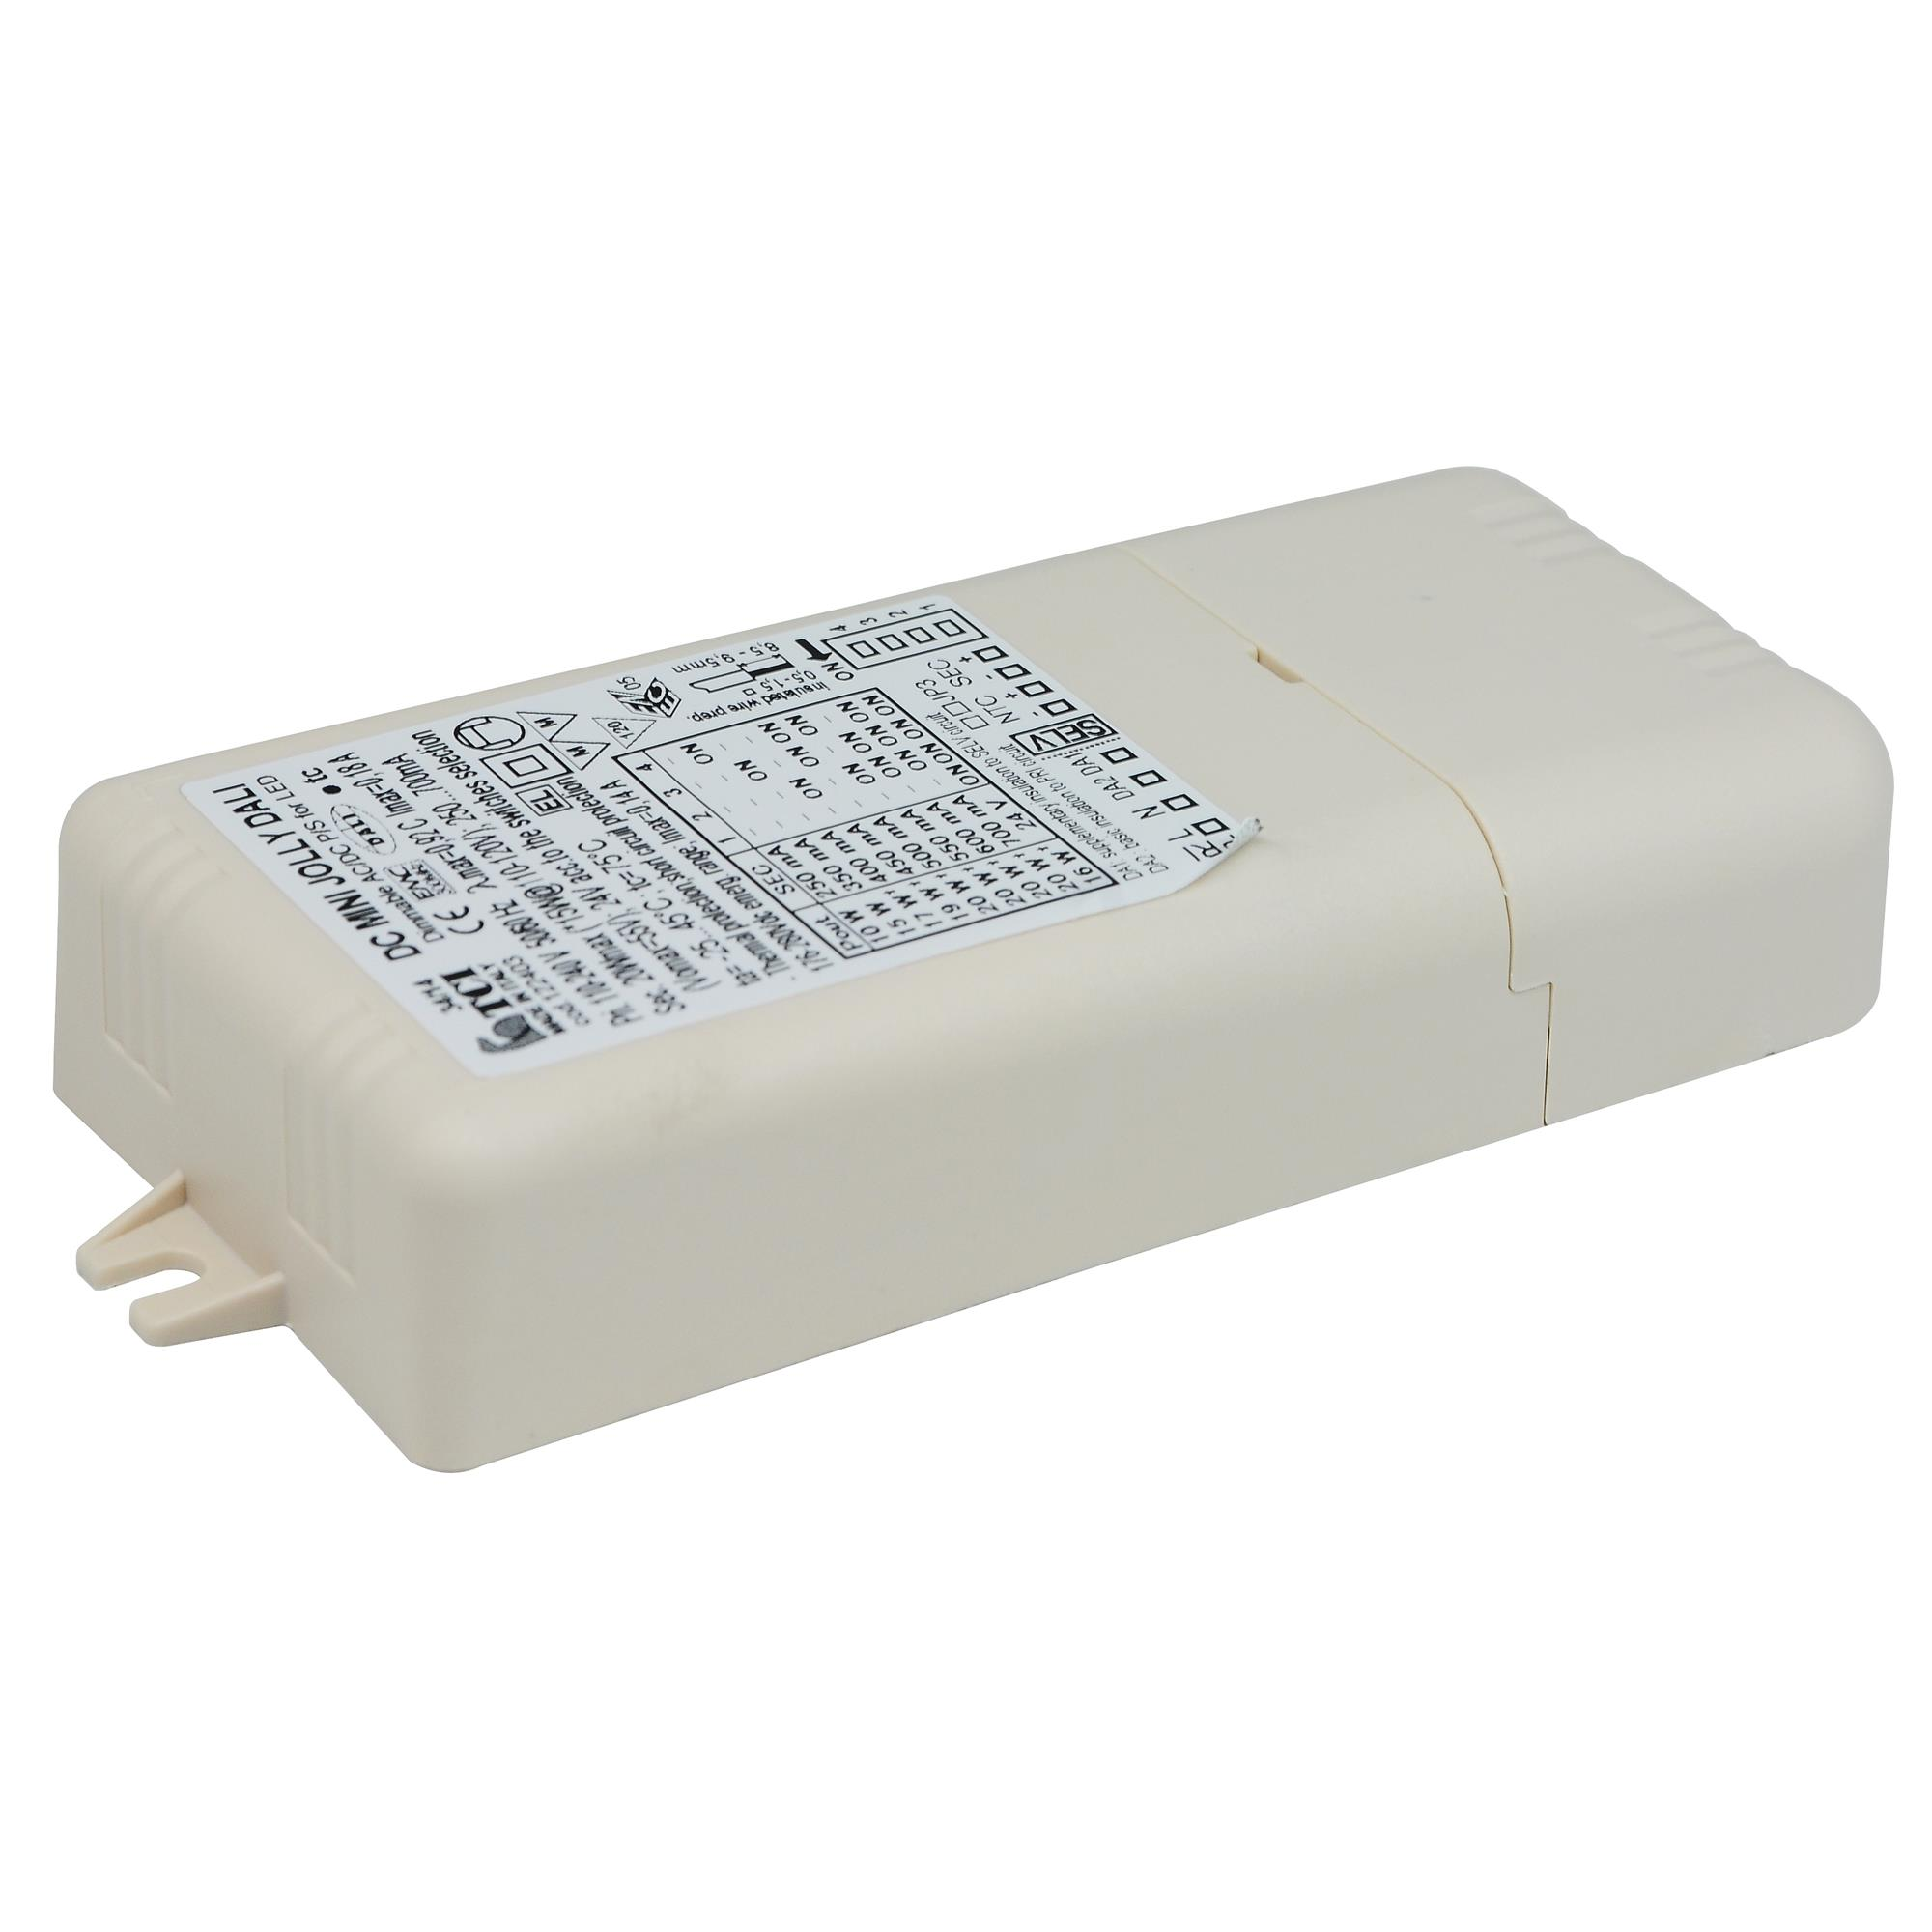 Dali Dimmable Led Driver Constant Current Voltage White Power Supply Circuitled Circuit10w Circuit 10w 20w